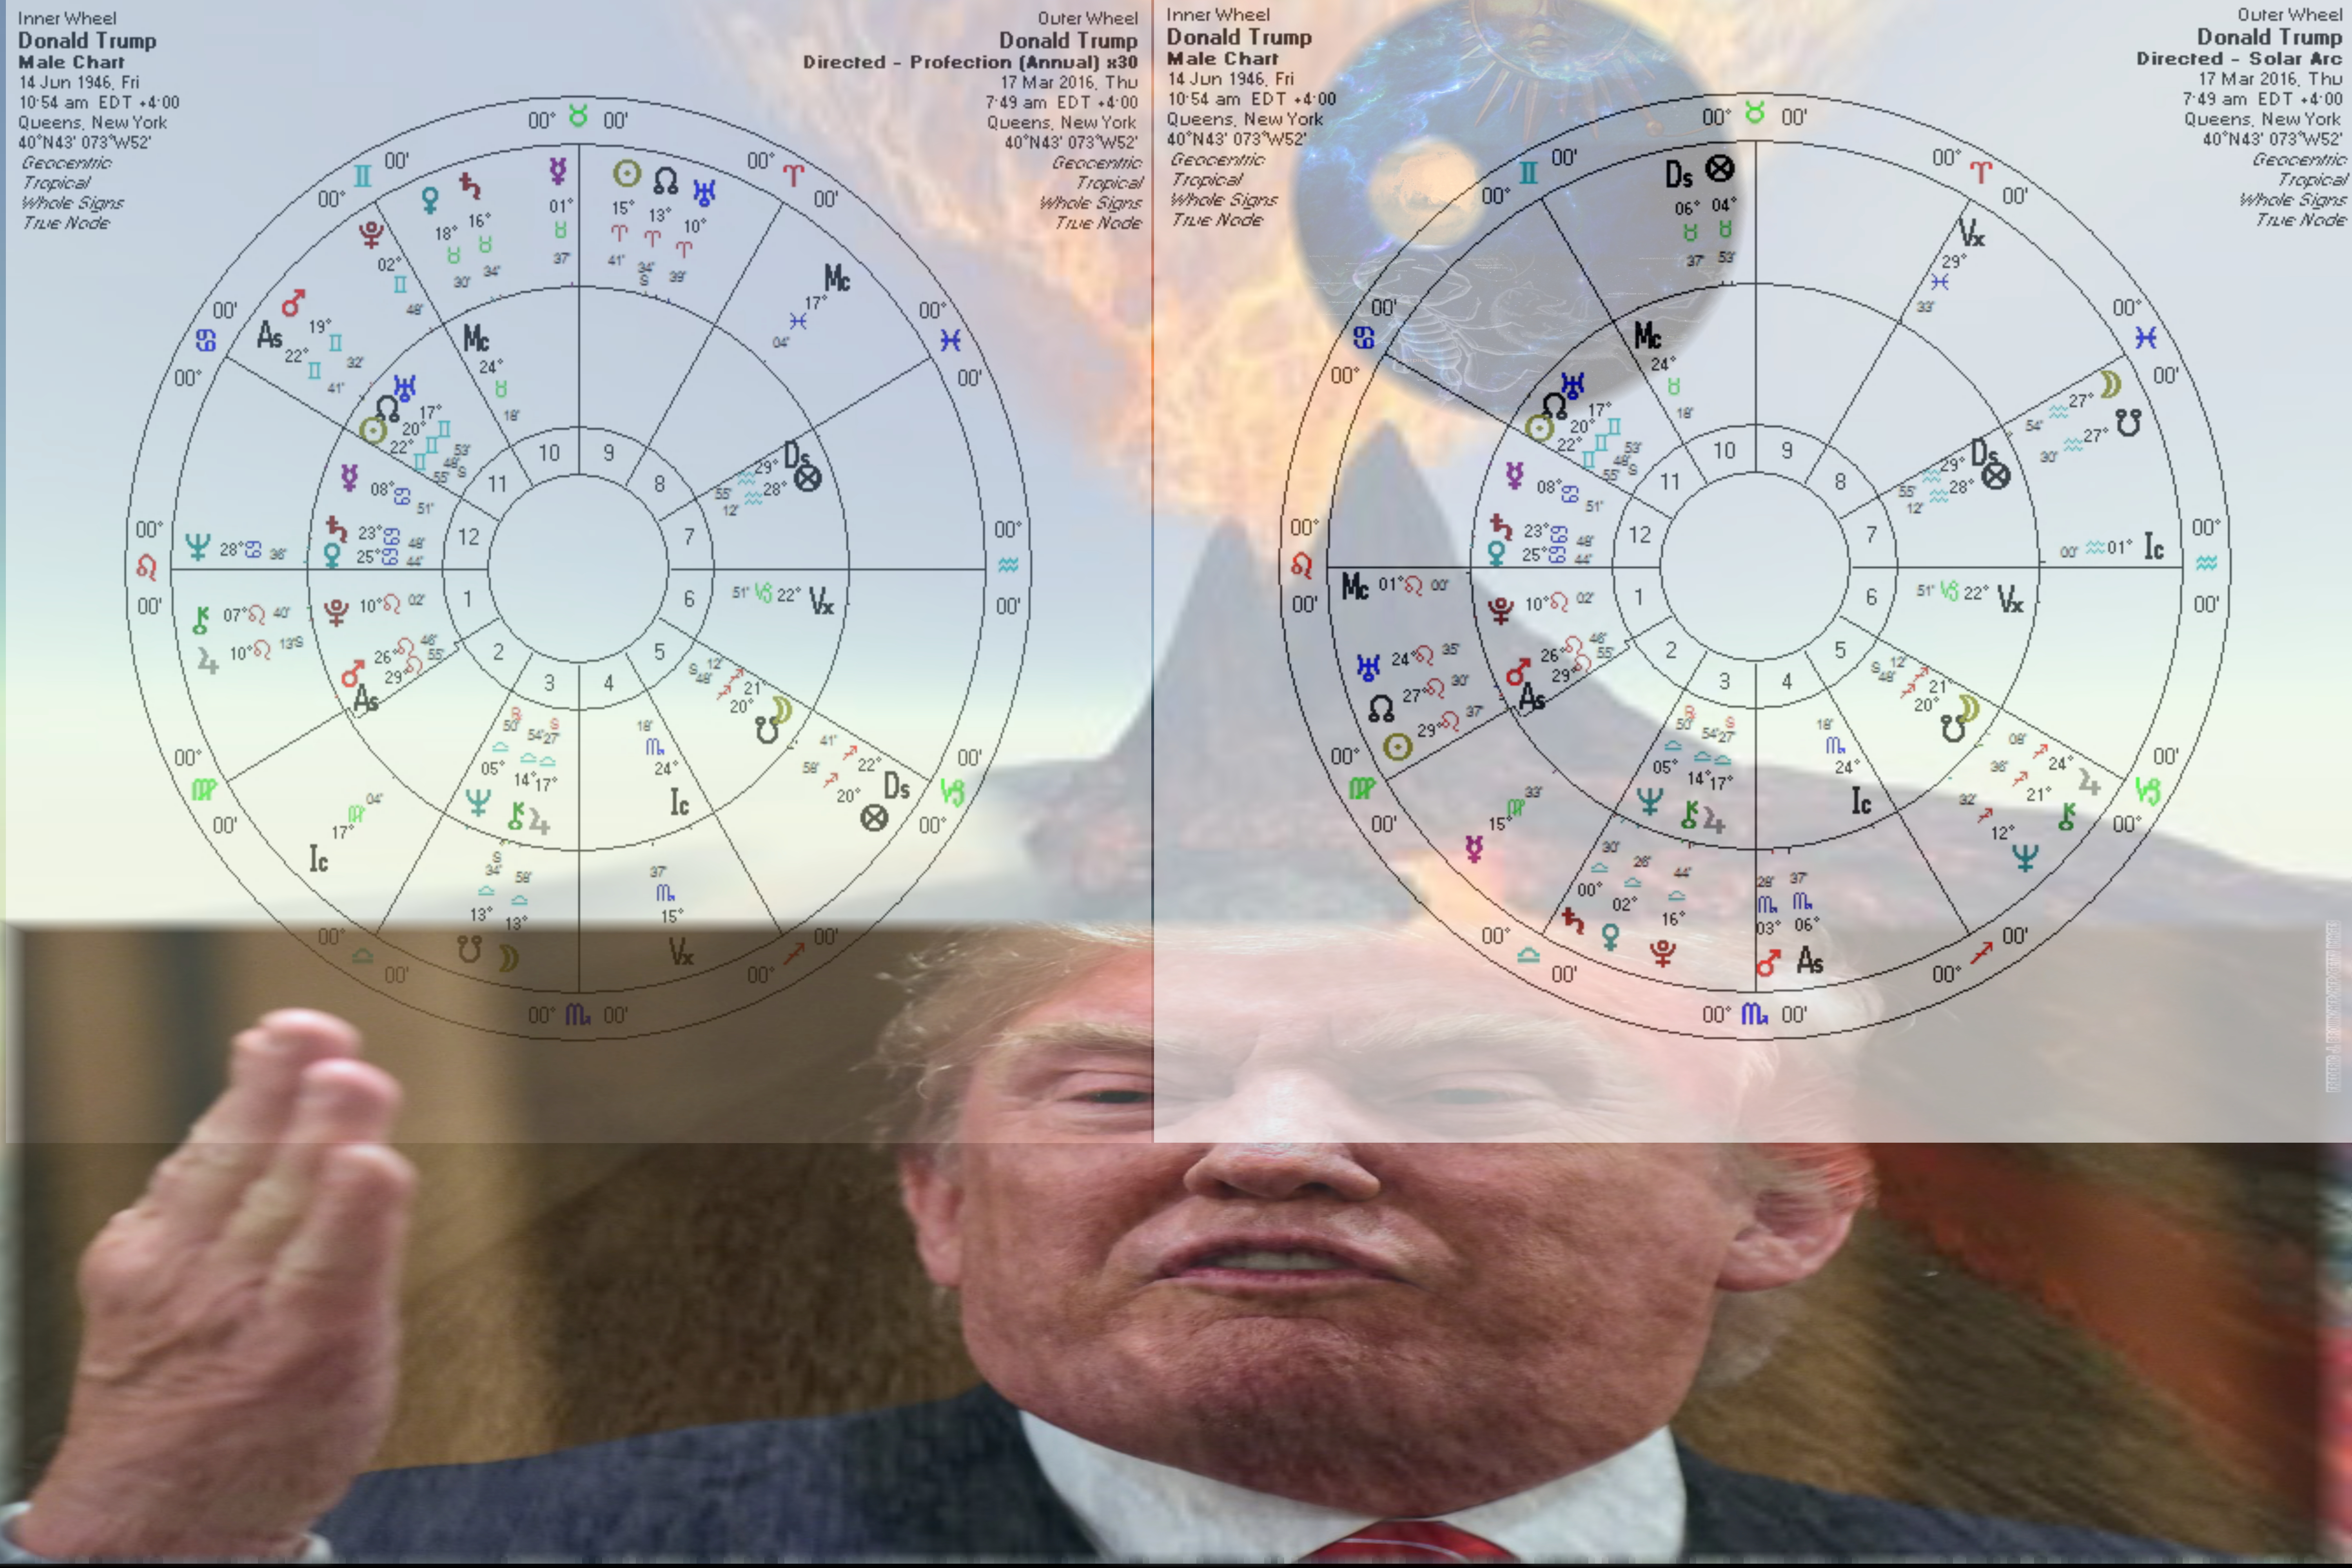 Usa forecast 2018 trump the eclipse baby when you see someones natal chart with the sunmoon co joined to the lunar nodes of the moon then they are generally speaking nvjuhfo Images